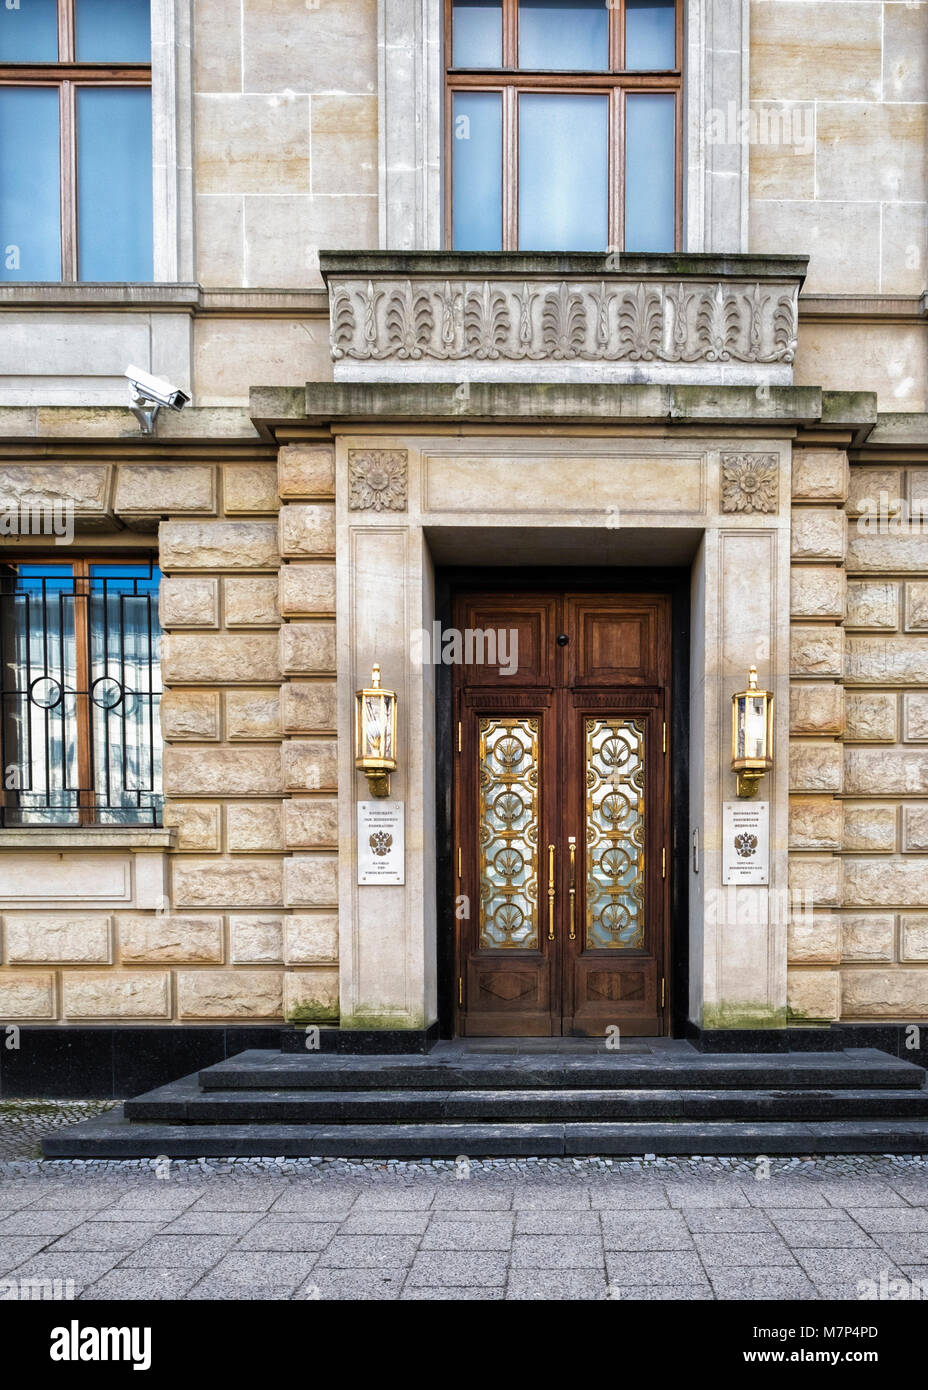 Berlin-Mitte,Unter den Linden, Embassy of the Russian Federation - Stock Image